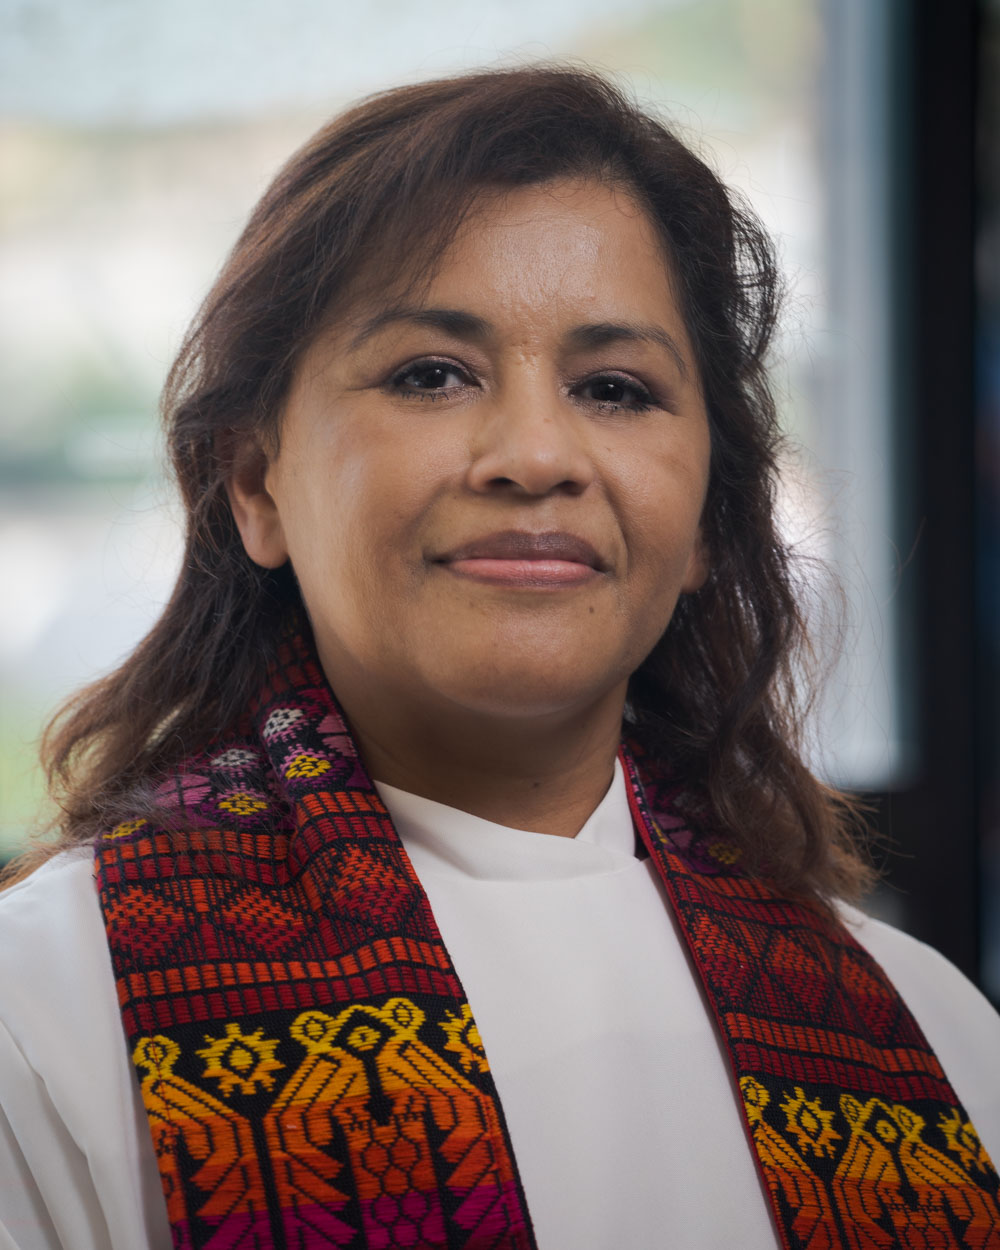 Rev. Maribel Celiz